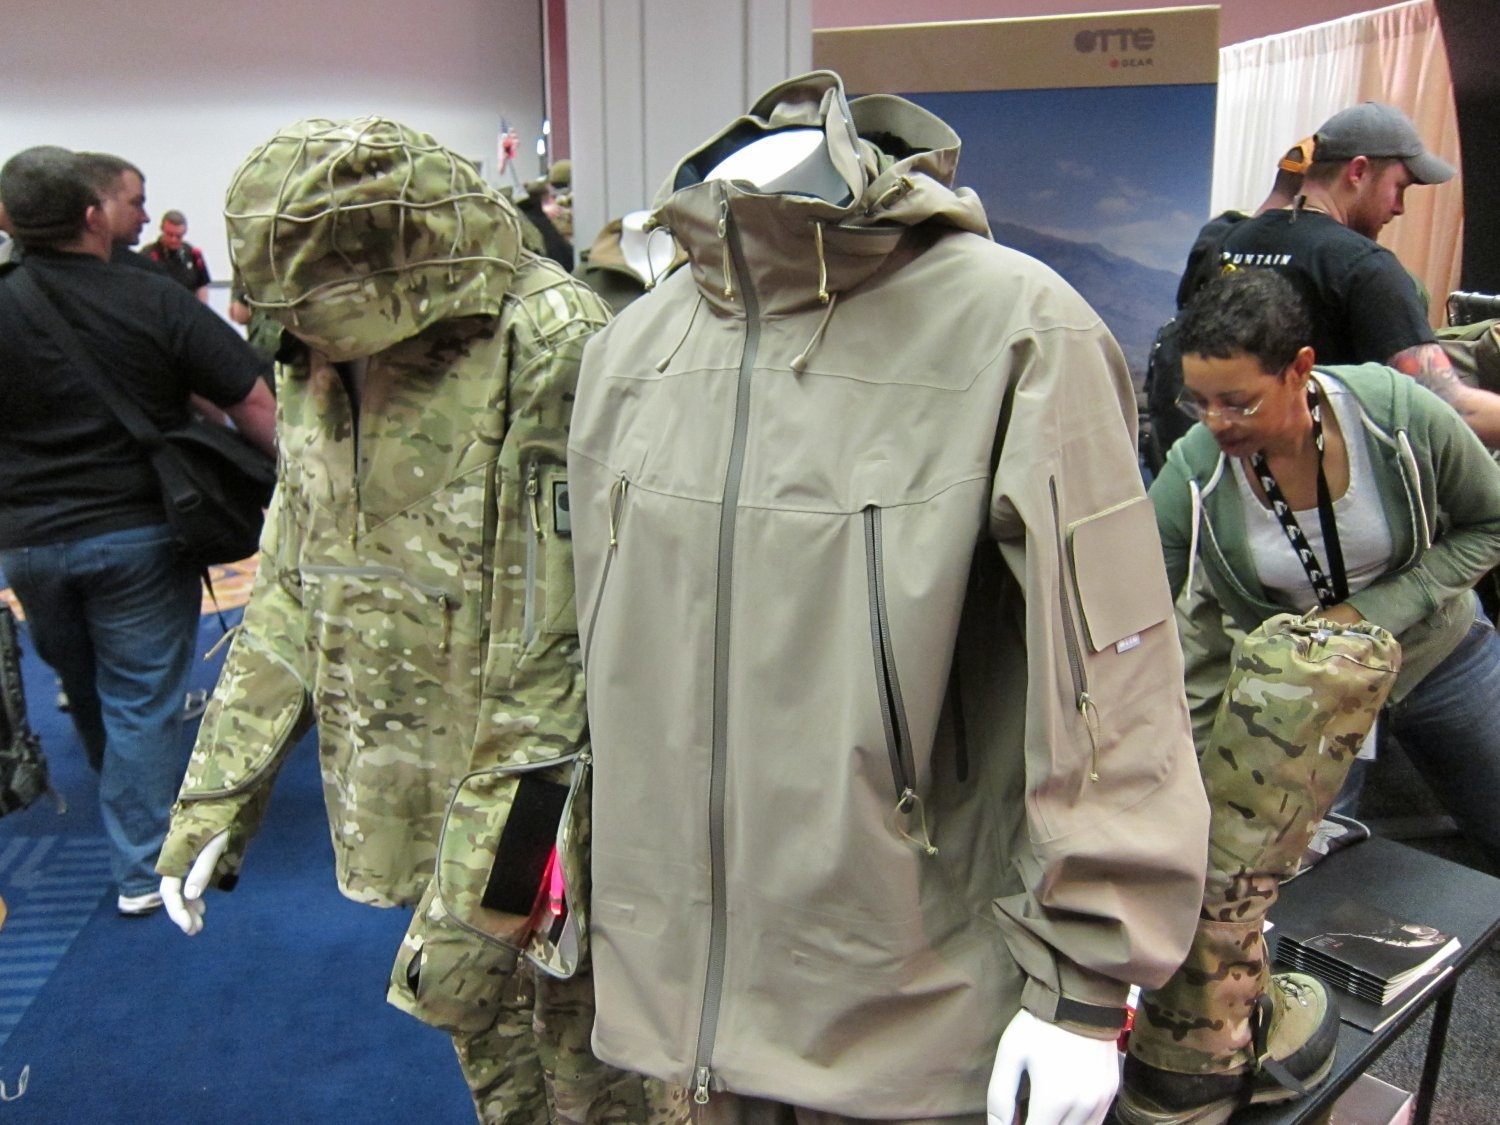 OTTE Gear Combat Anorak Hooded Pullover Tactical Softshell Jacket SHOT Show 2011 DefenseReview.com DR 2 <!  :en  >OTTE Gear Recce/Overwatch Anorak: High End, High Tech Tactical/Combat Soft Shell Hoodie Sniper Jacket (Pullover Type) with Crye MultiCam Camouflage Pattern and Ghillie Platform for Snipers, Recce Operators/Assaulters and Civilian Tactical Shooters<!  :  >